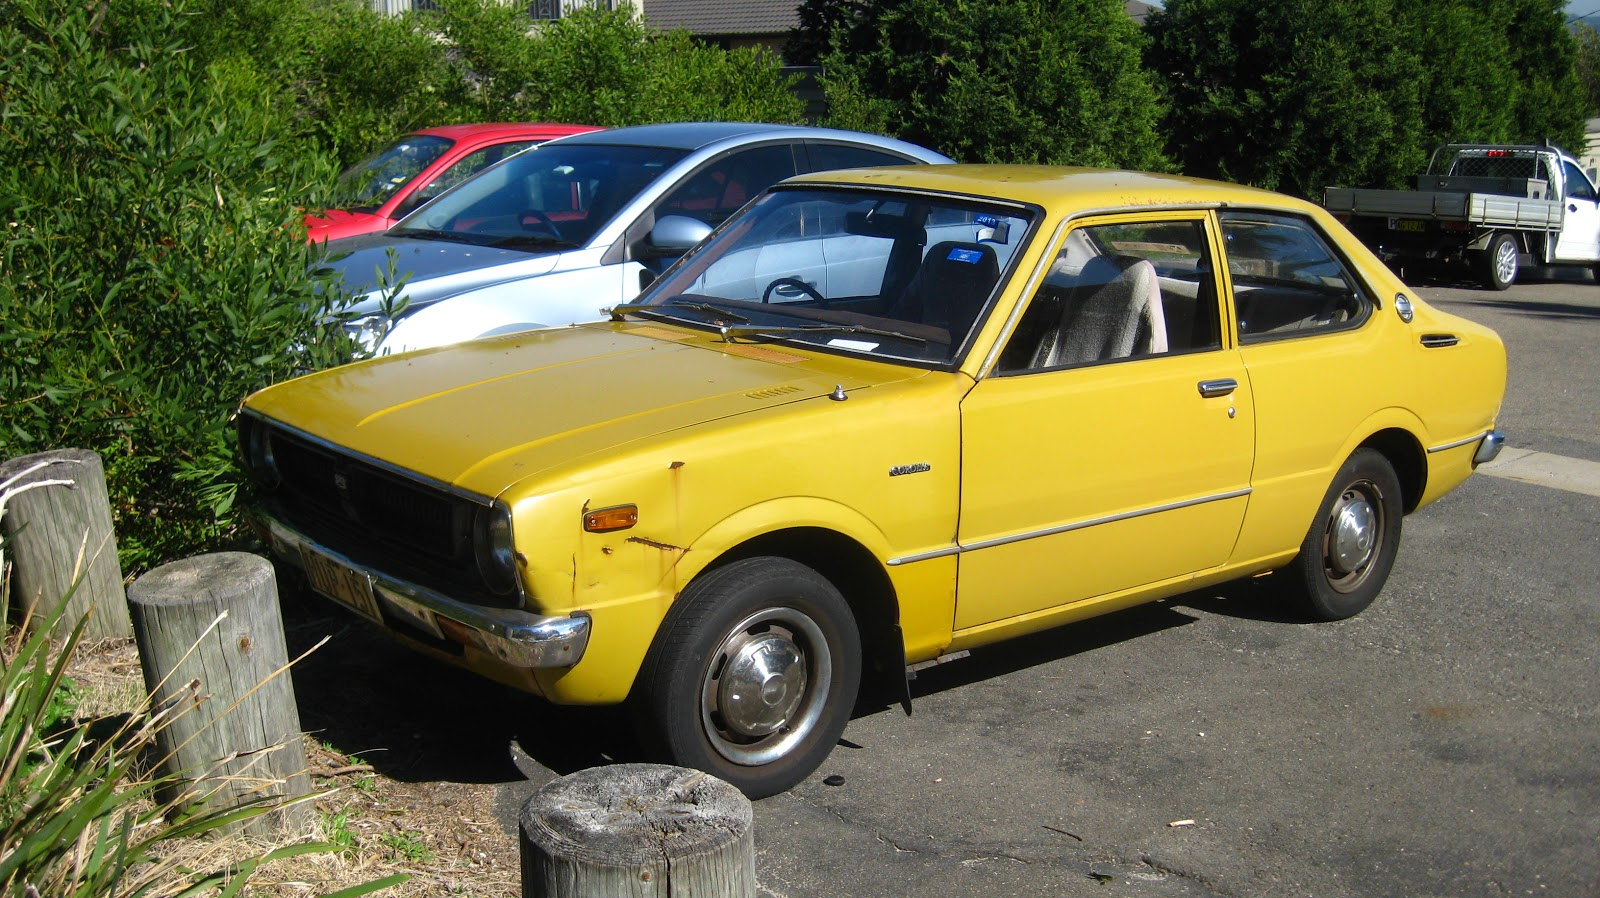 Image result for 1988 toyota corolla yellow four door